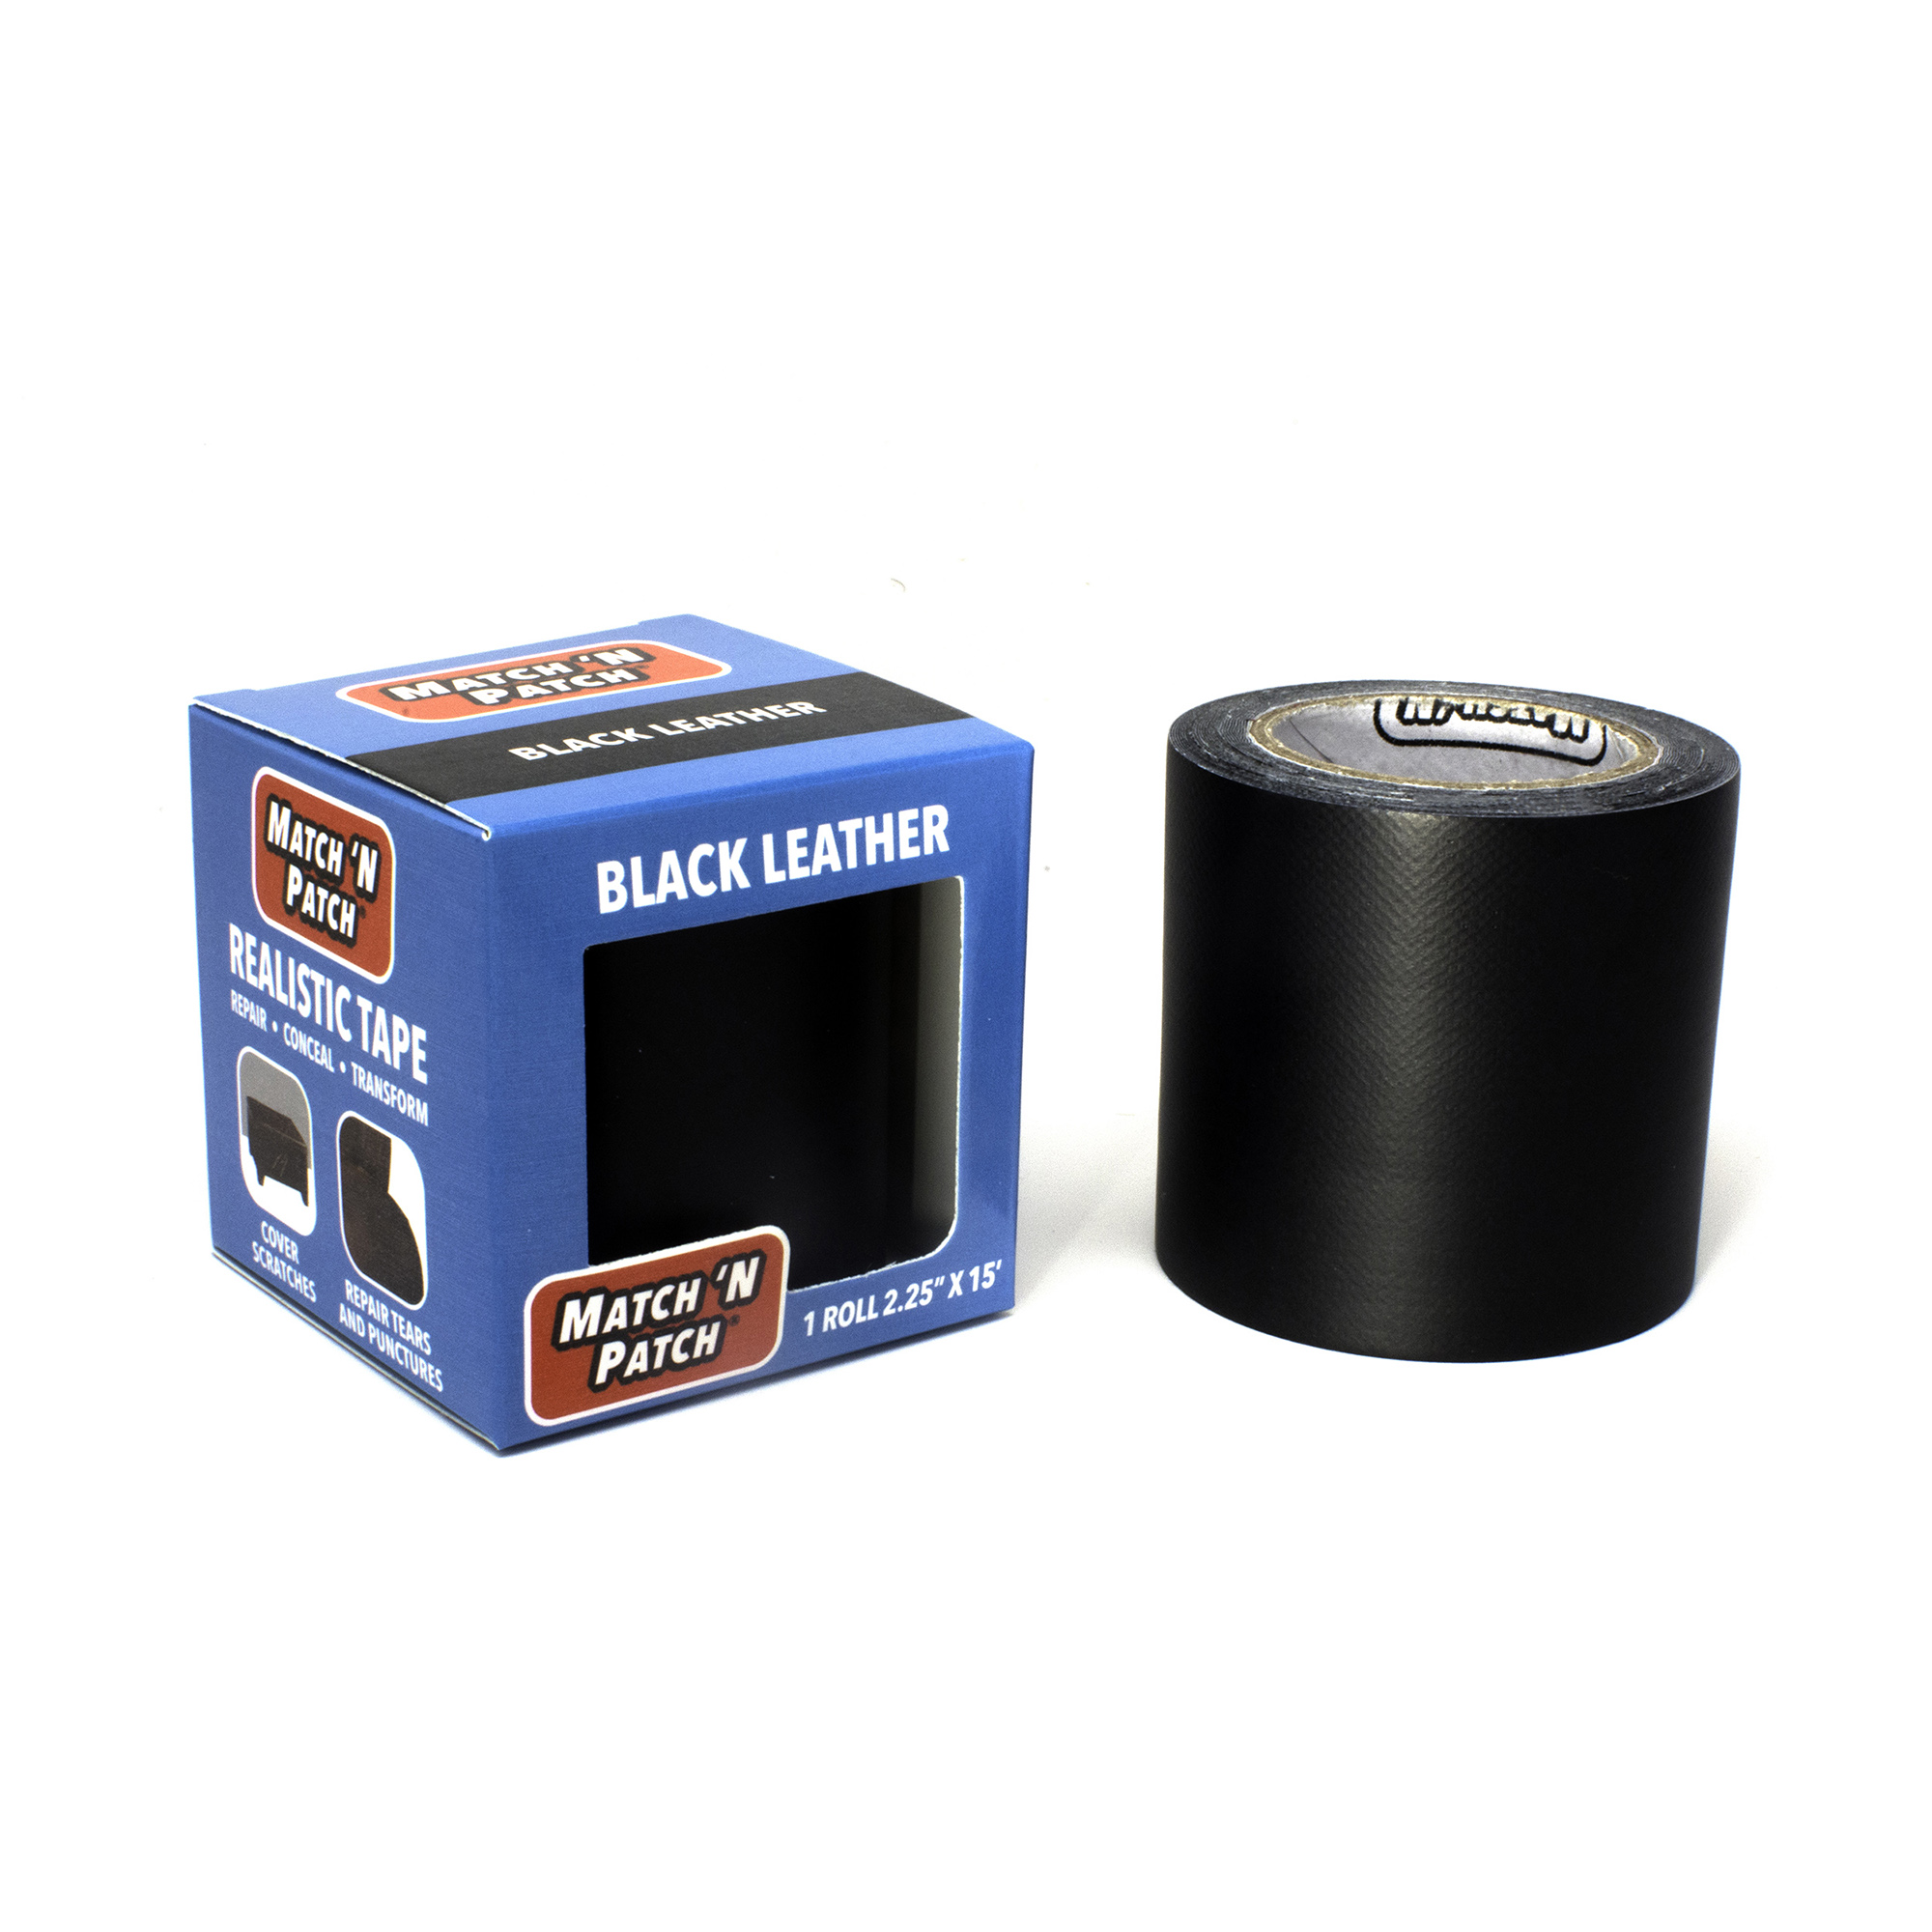 Match N Patch Realistic Black Leather Repair Tape